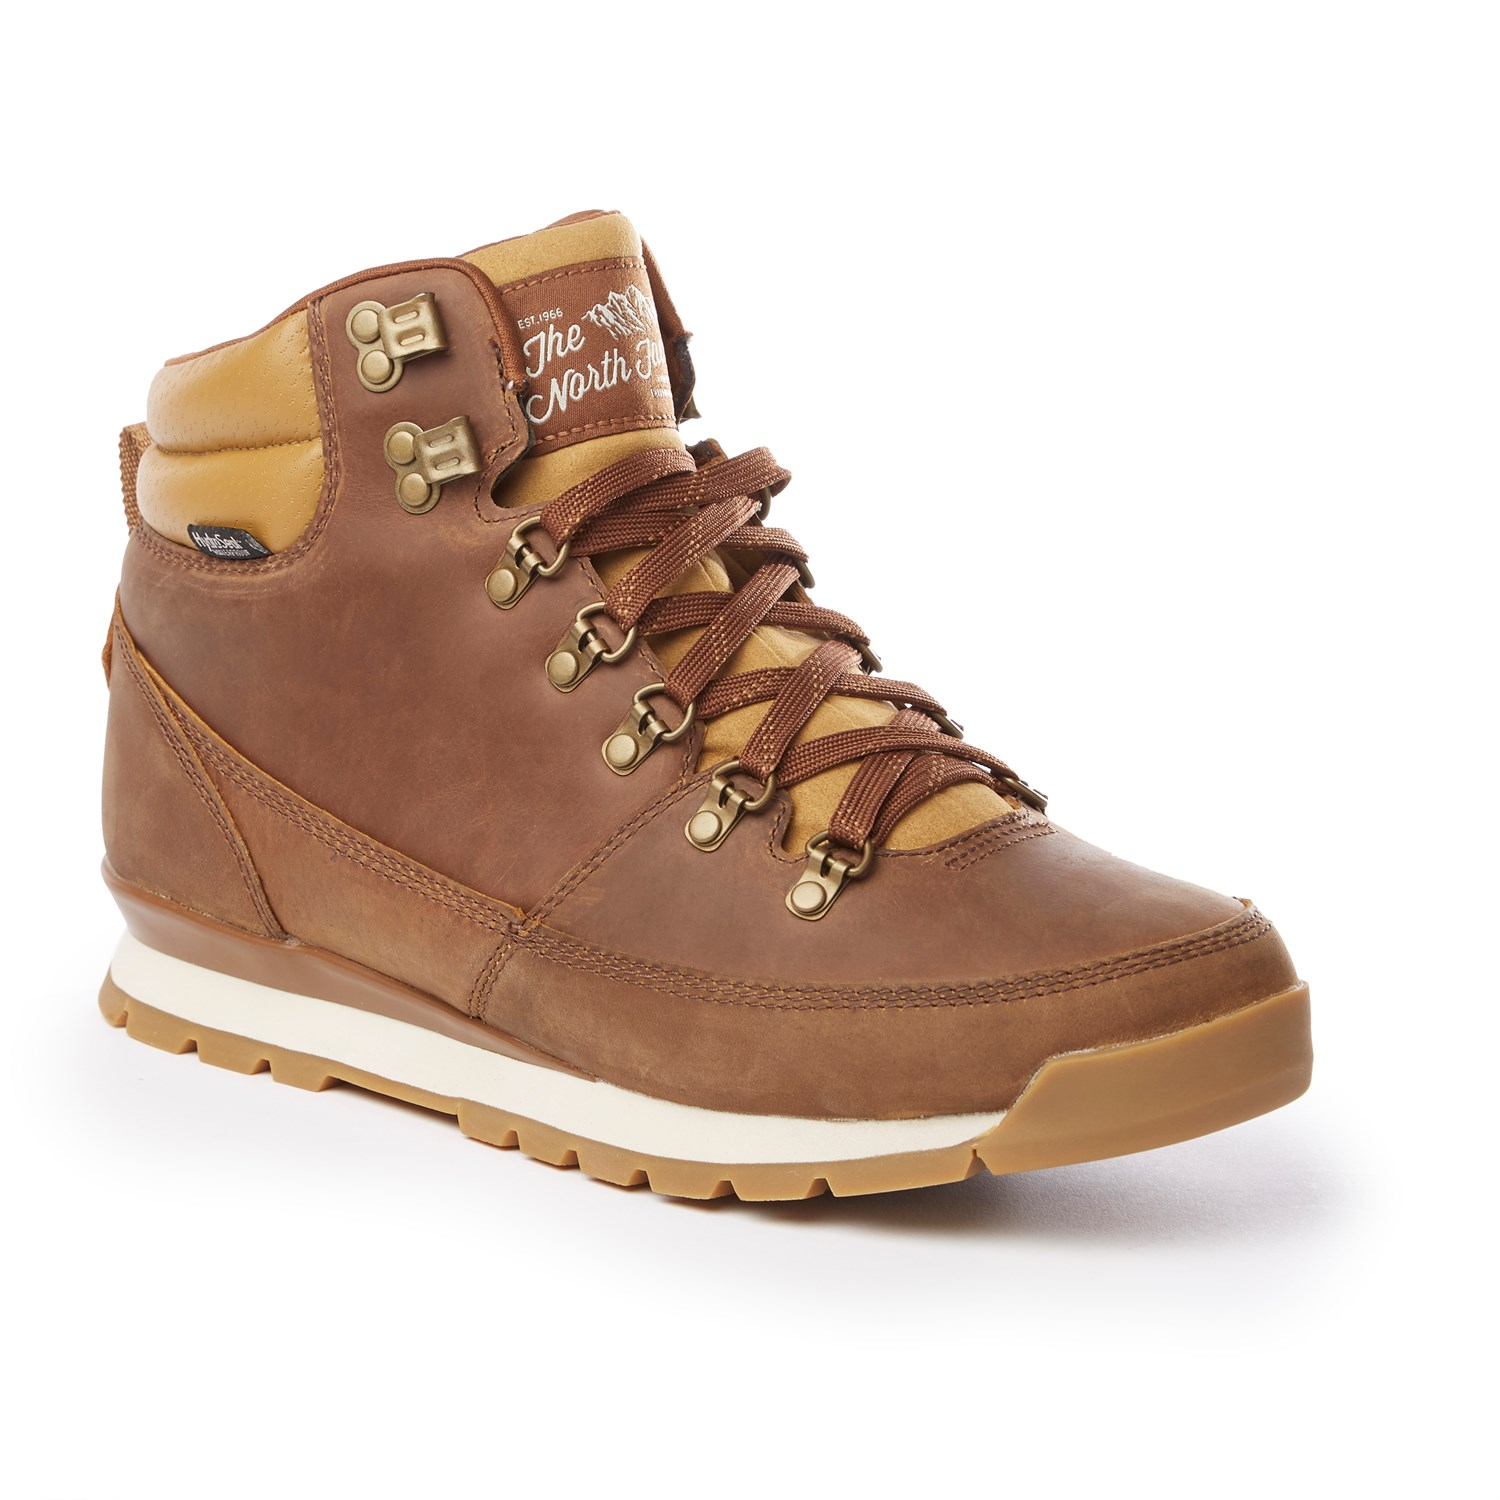 8c97fcf9f The North Face Back-To-Berkeley Redux Leather Boots